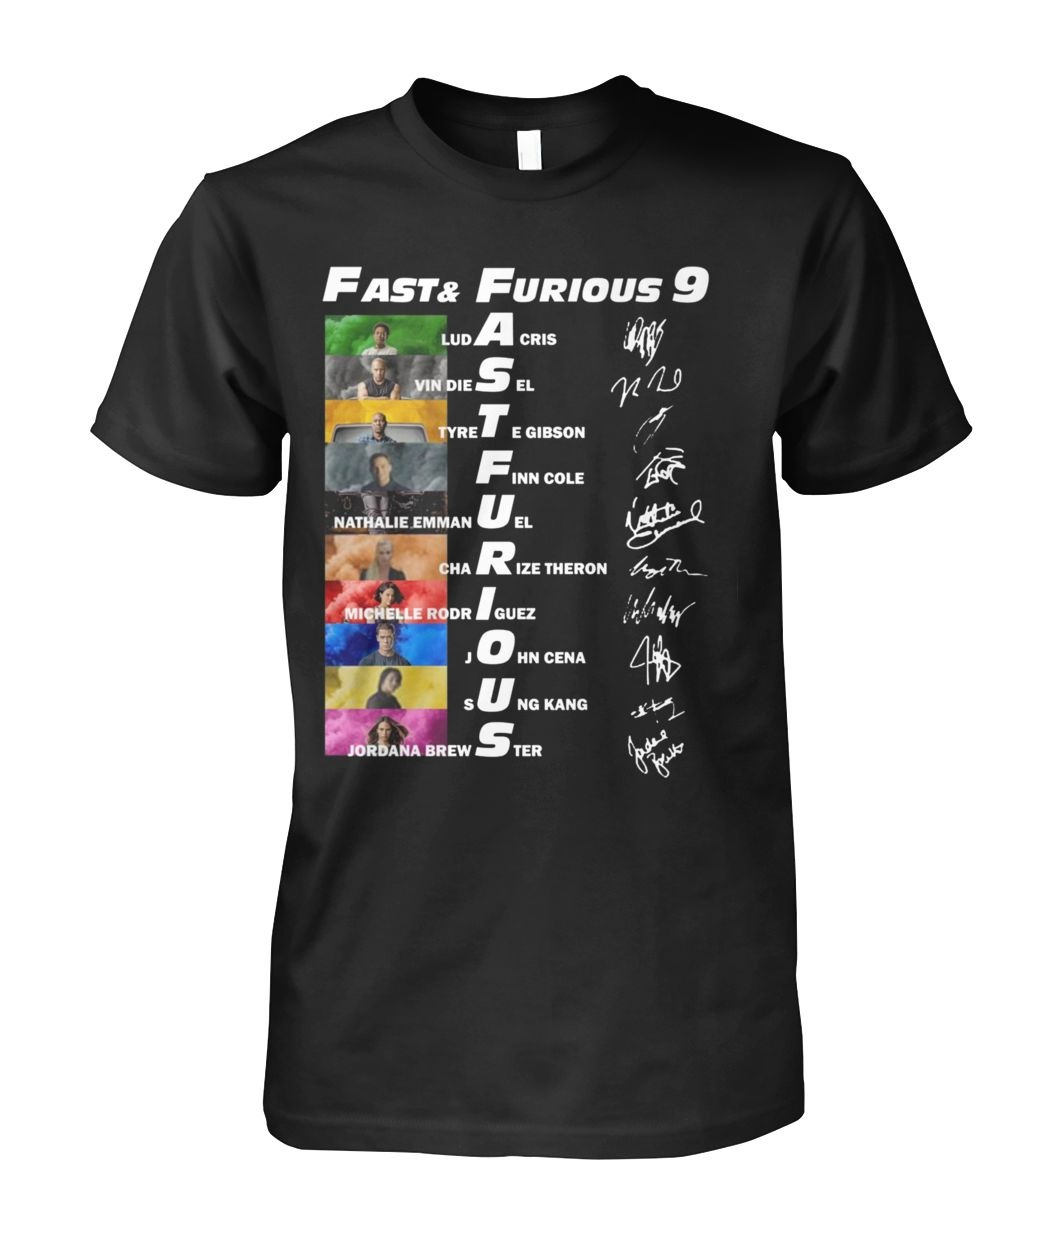 Fast and Furious 9 character signatures T-shirt